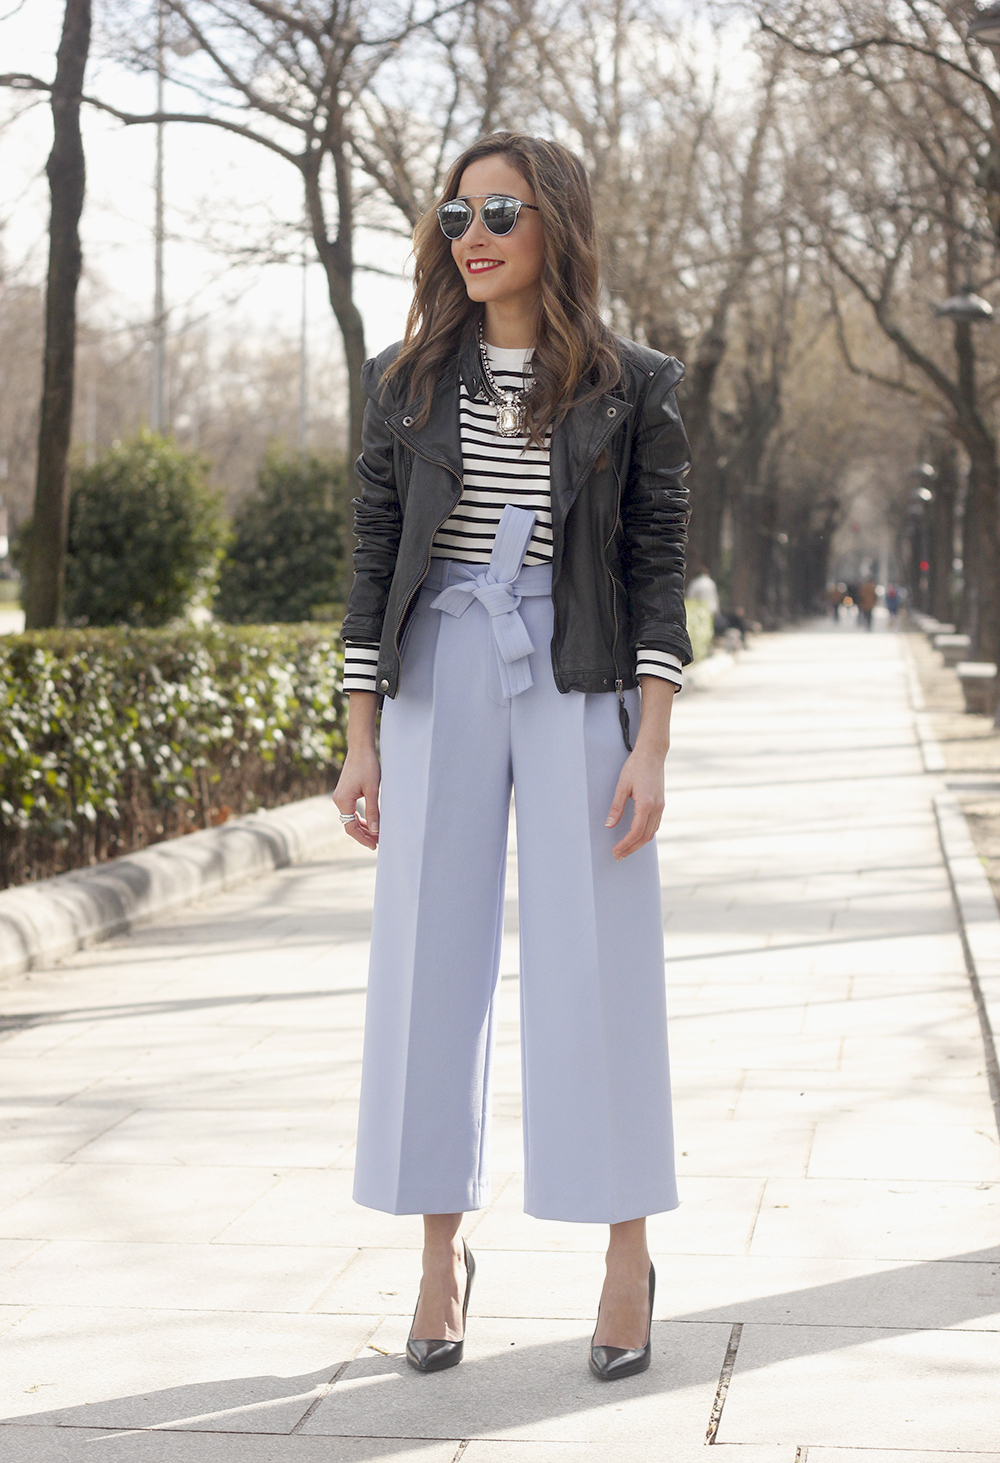 Light Blue Pallazzo pants t-shirt stripes black heels biker jacket dior so real sunglasses outfit style fashion02